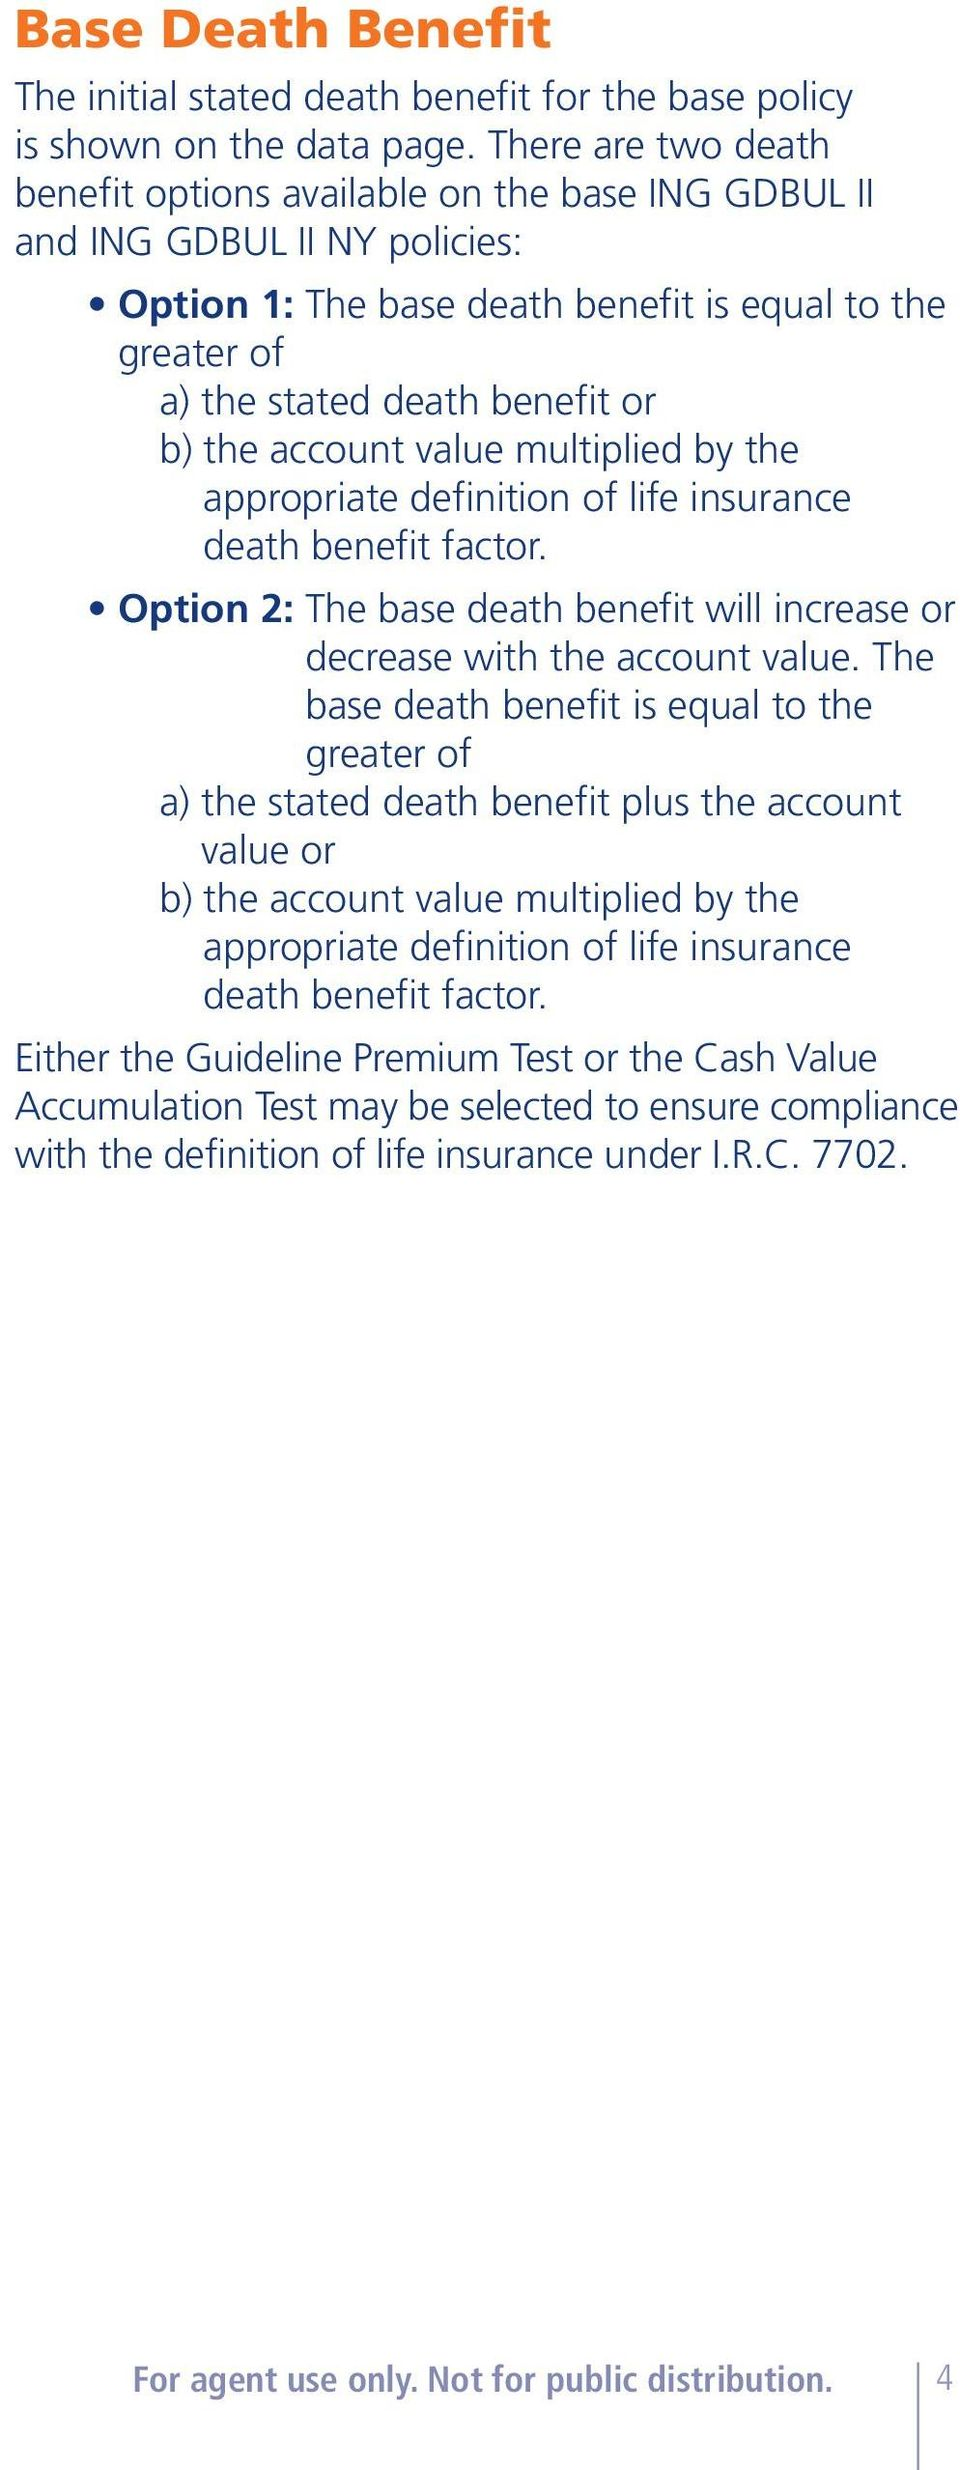 account value multiplied by the appropriate definition of life insurance death benefit factor. Option 2: The base death benefit will increase or decrease with the account value.